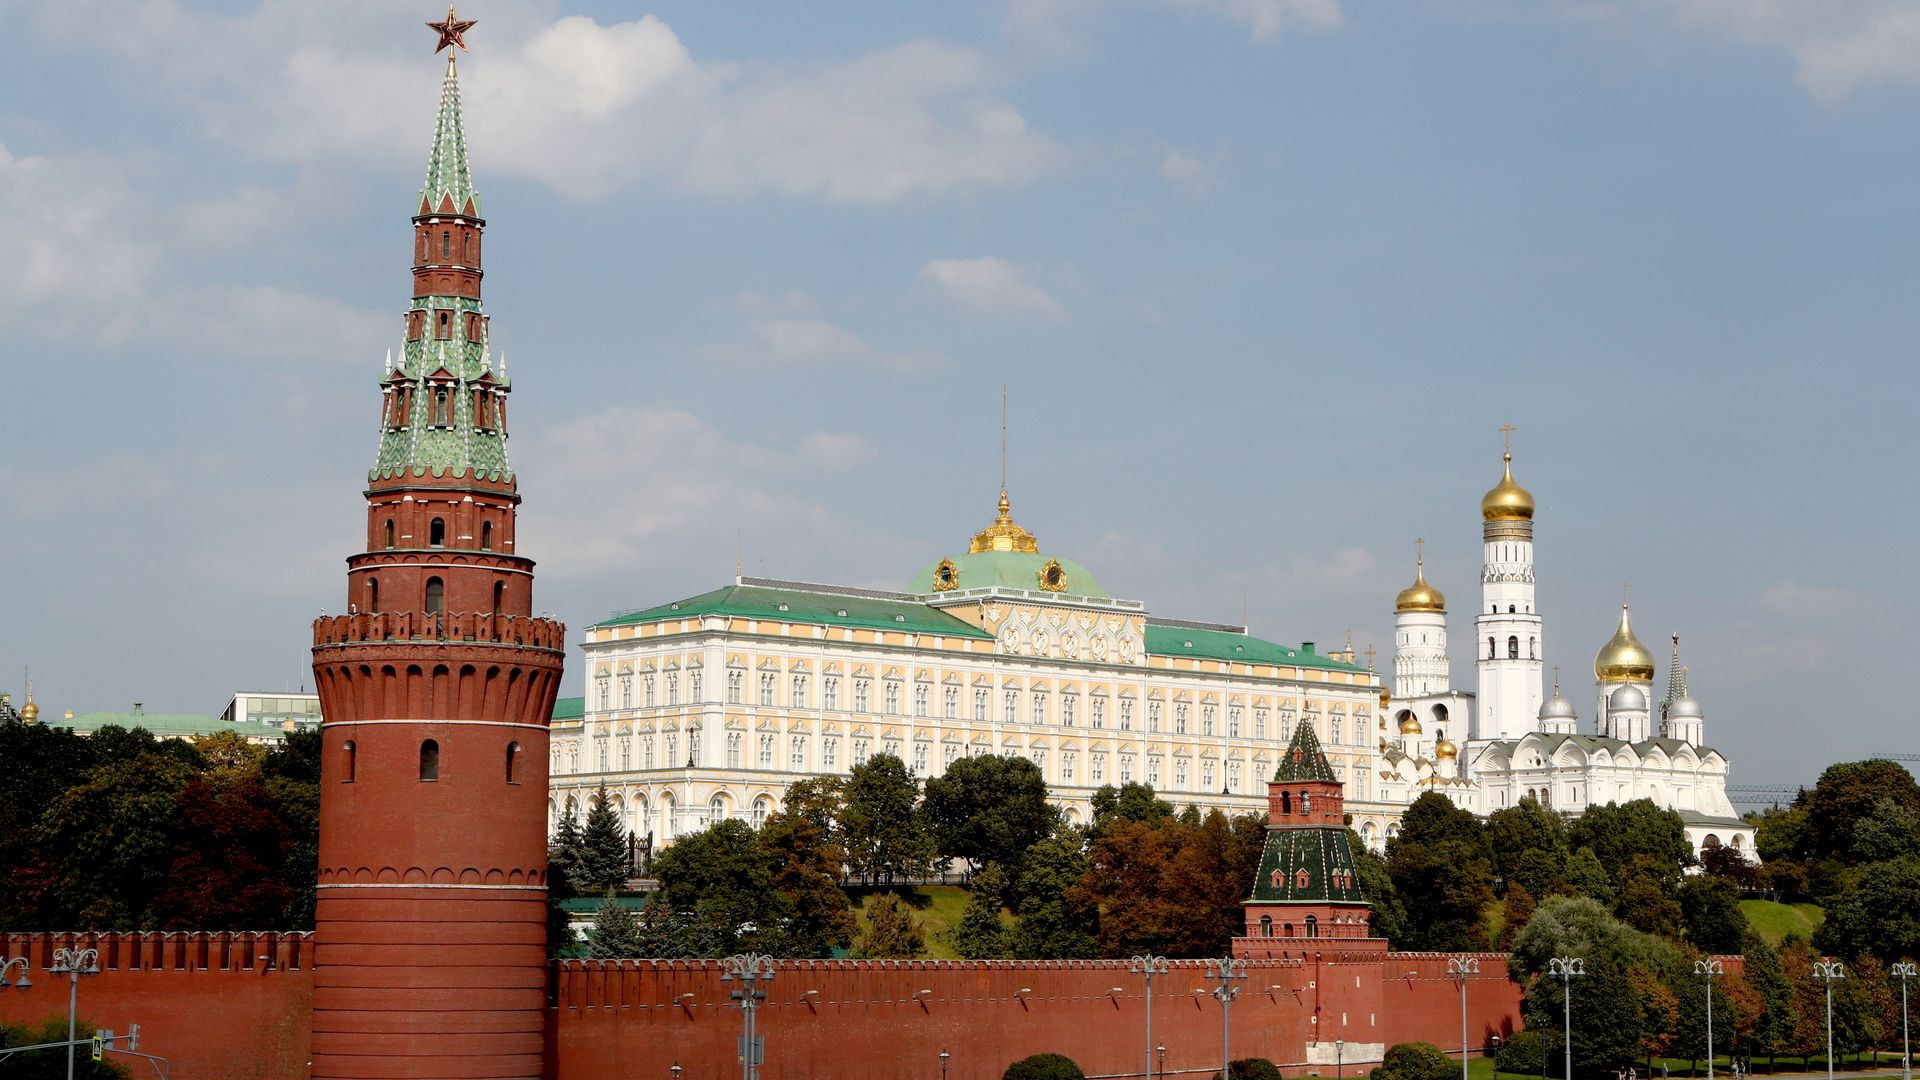 view of the Kremlin compound